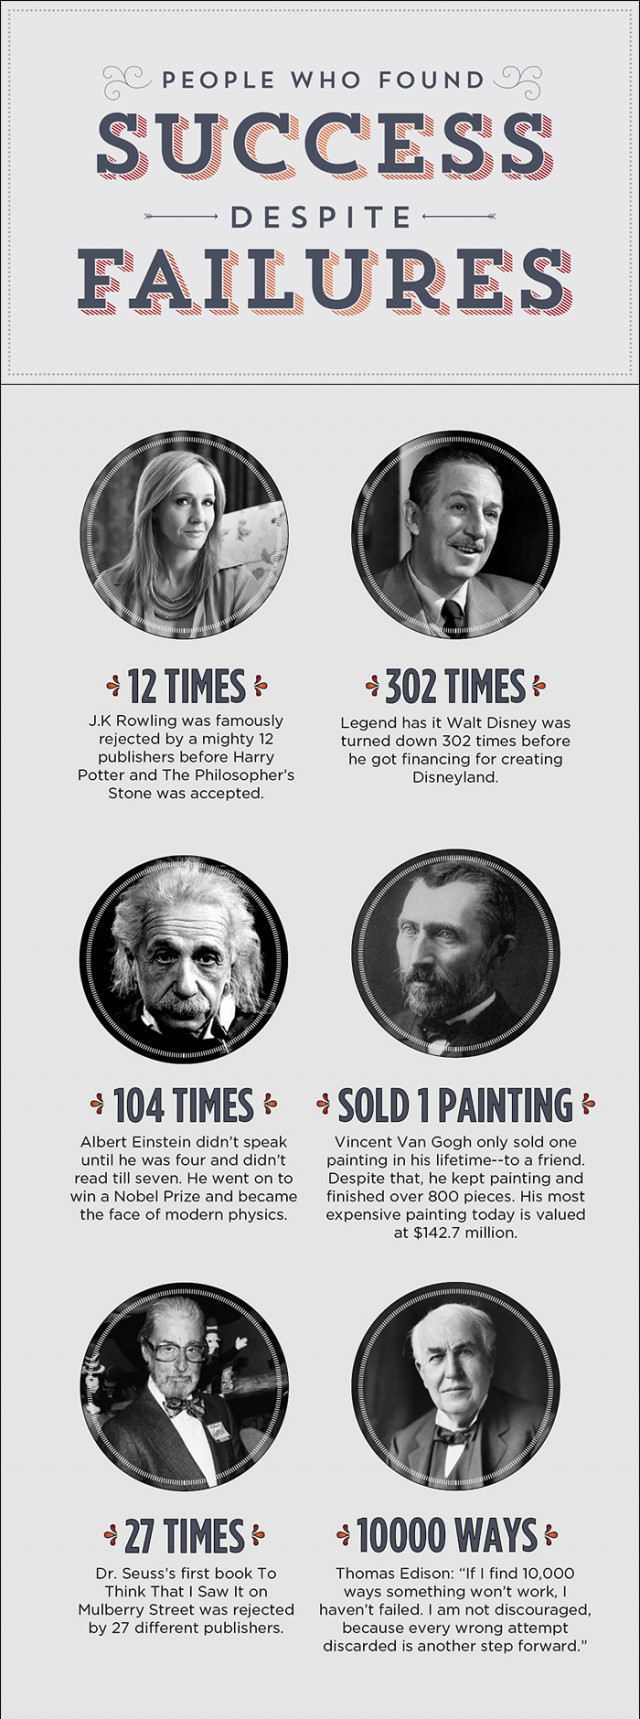 People Who Found Success Despite Failures